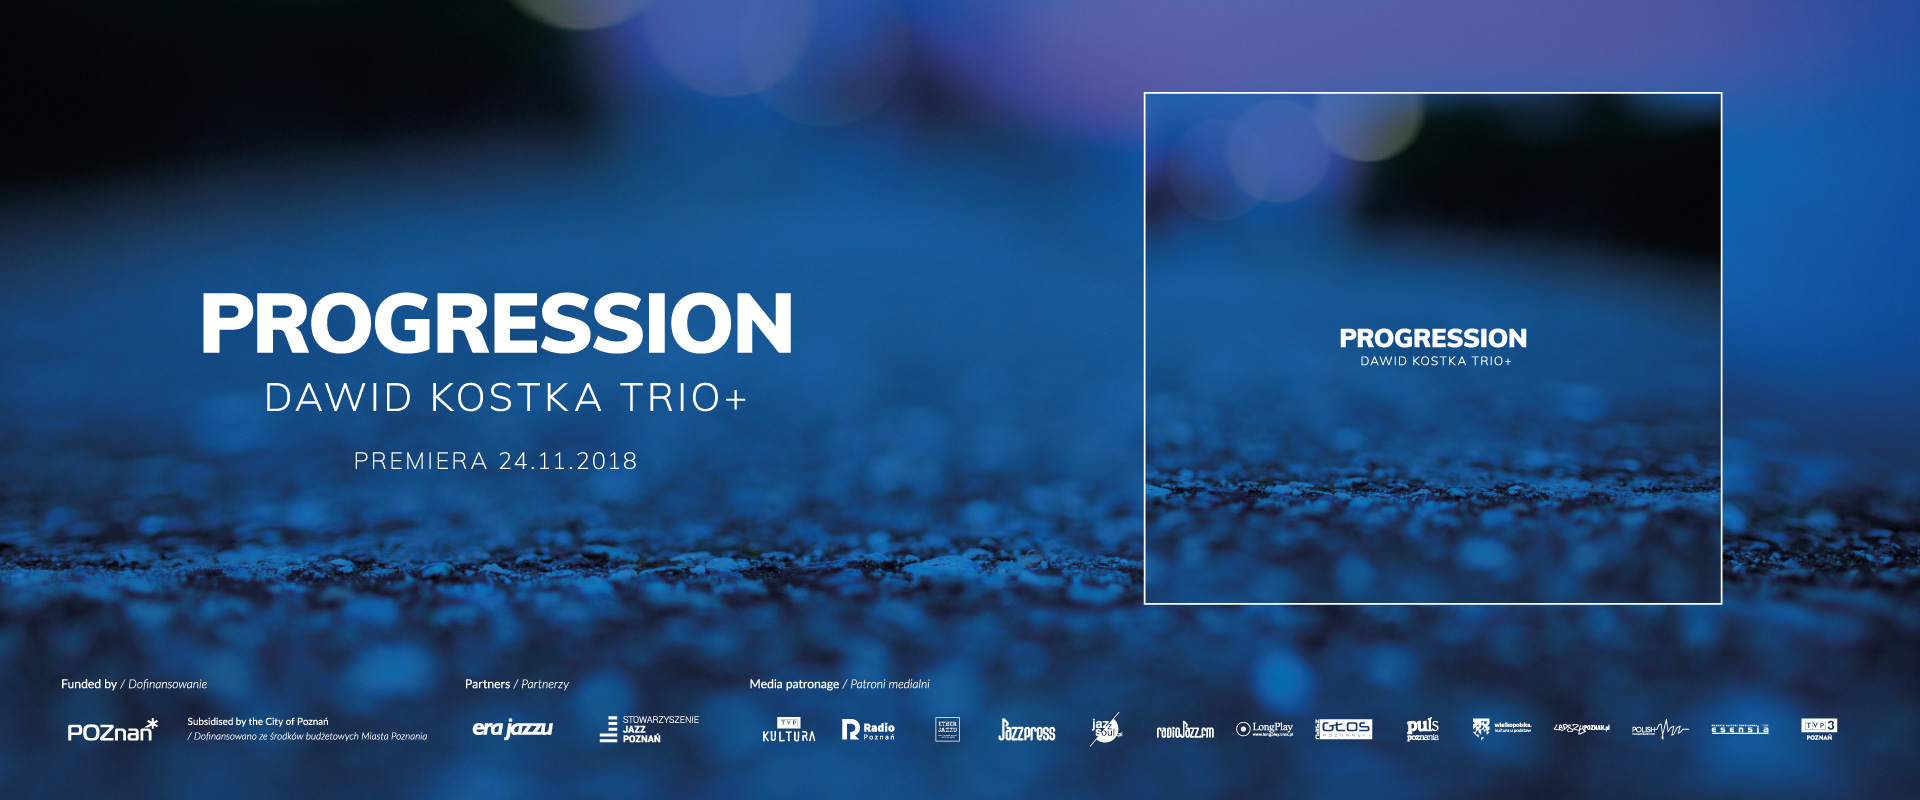 Dawid Kostka Trio+ Progression